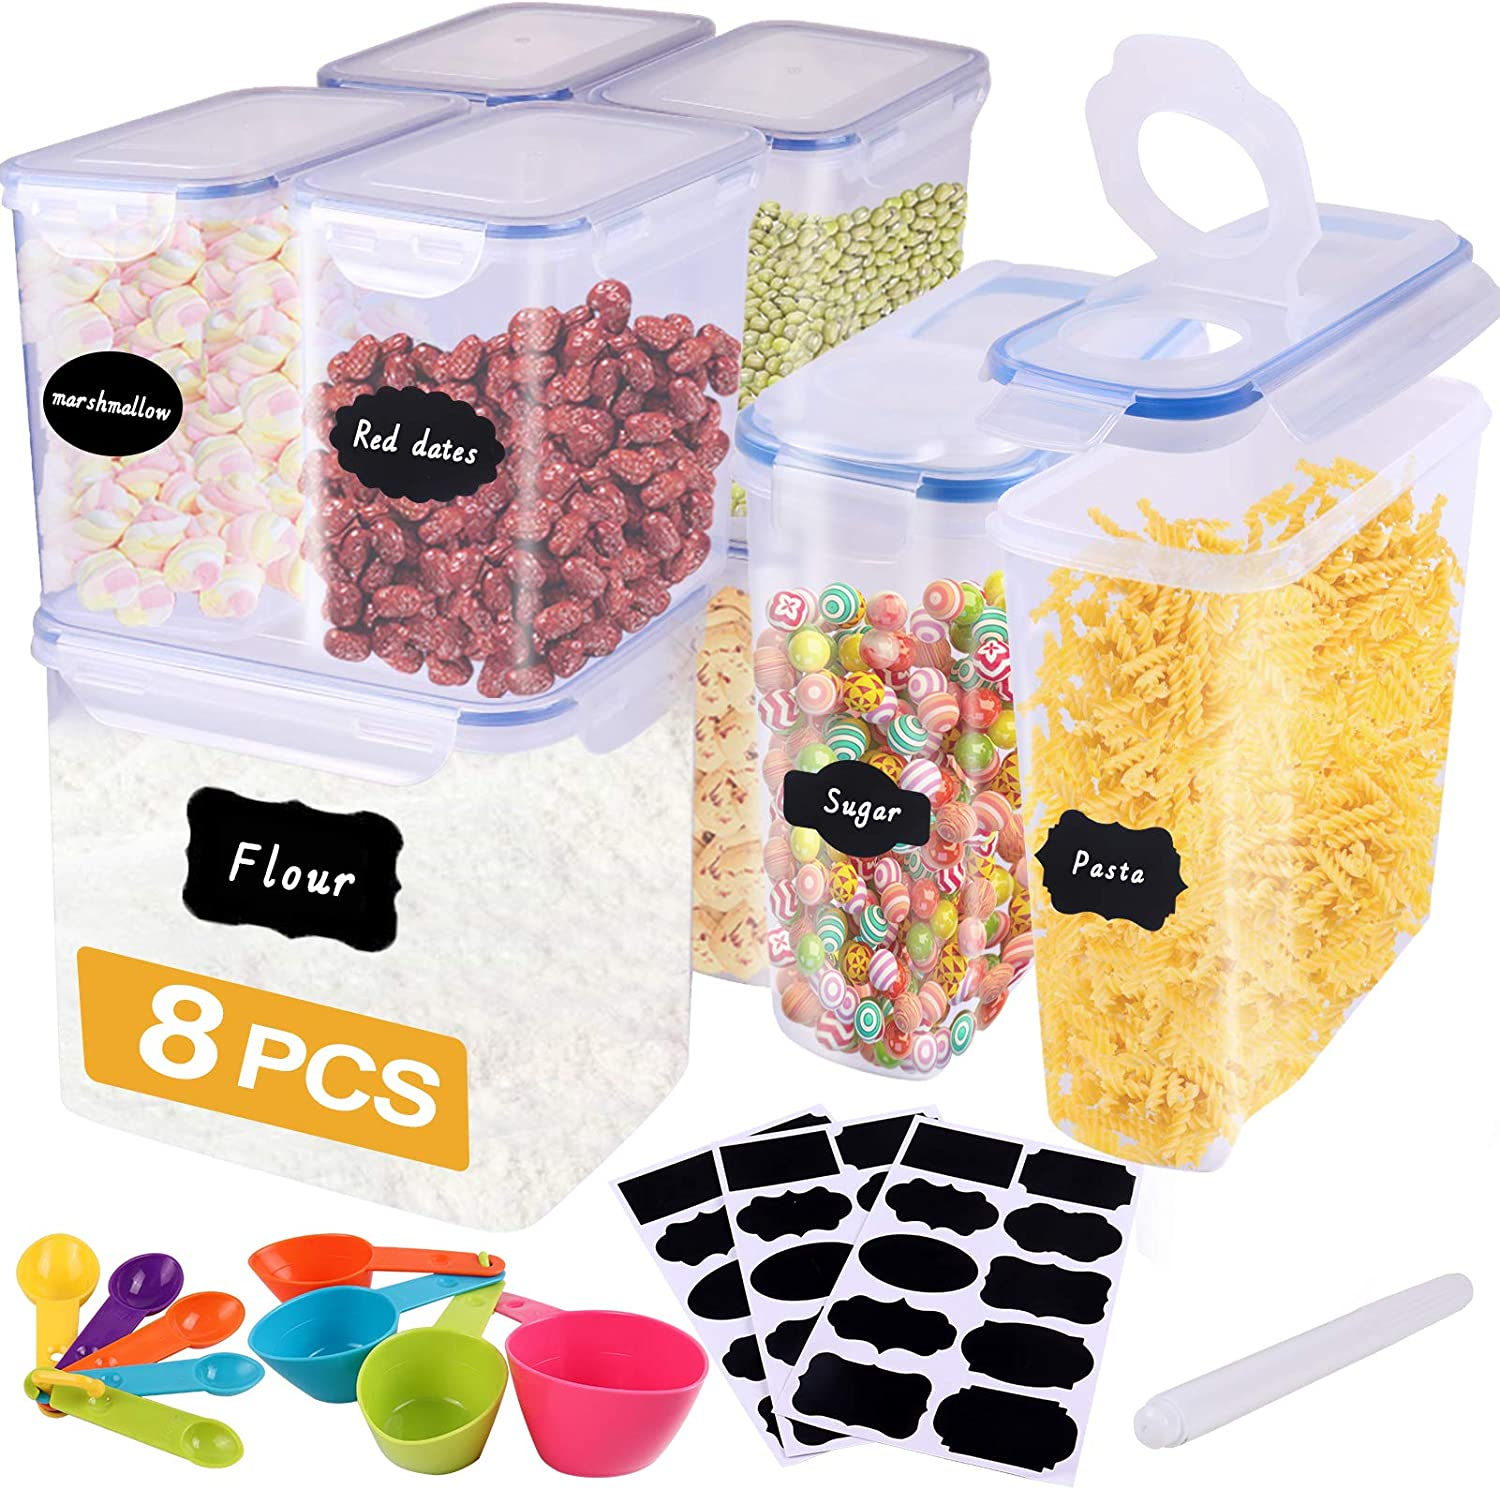 Airtight Food Storage Containers, Plastic Cereal Containers Storage Set 8 PCS 3.5L/1.8L/4L, Storage Containers with Lids for Food, Flour & Sugar, Large Pantry Storage with Measuring Cups & 30 Labels.